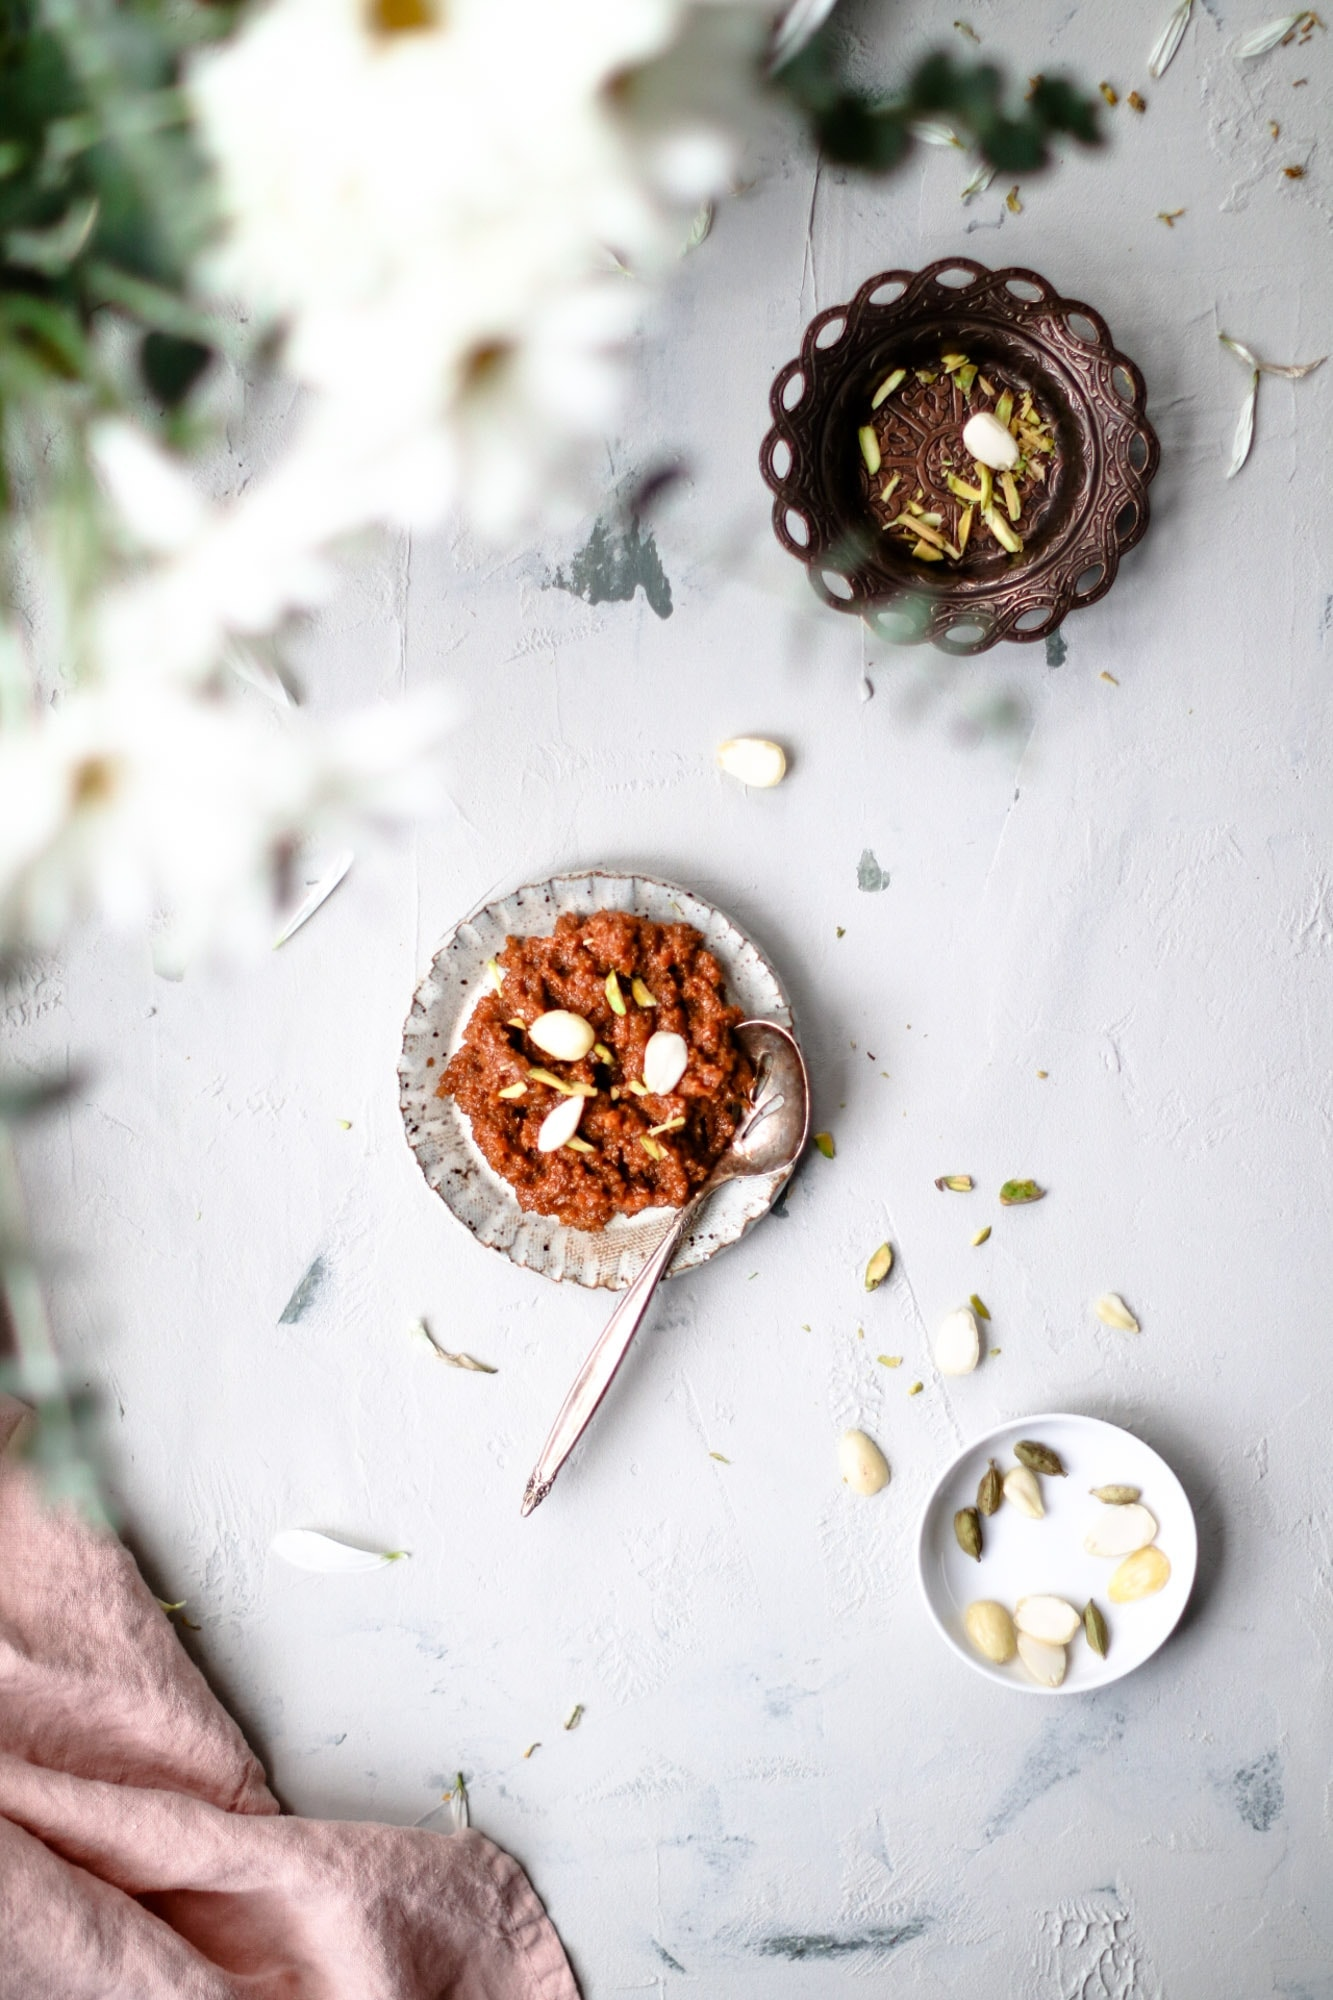 Top view of Instant Pot Carrot Halwa on a small place with a silver spoon garnished with sliced almonds and pistachios.